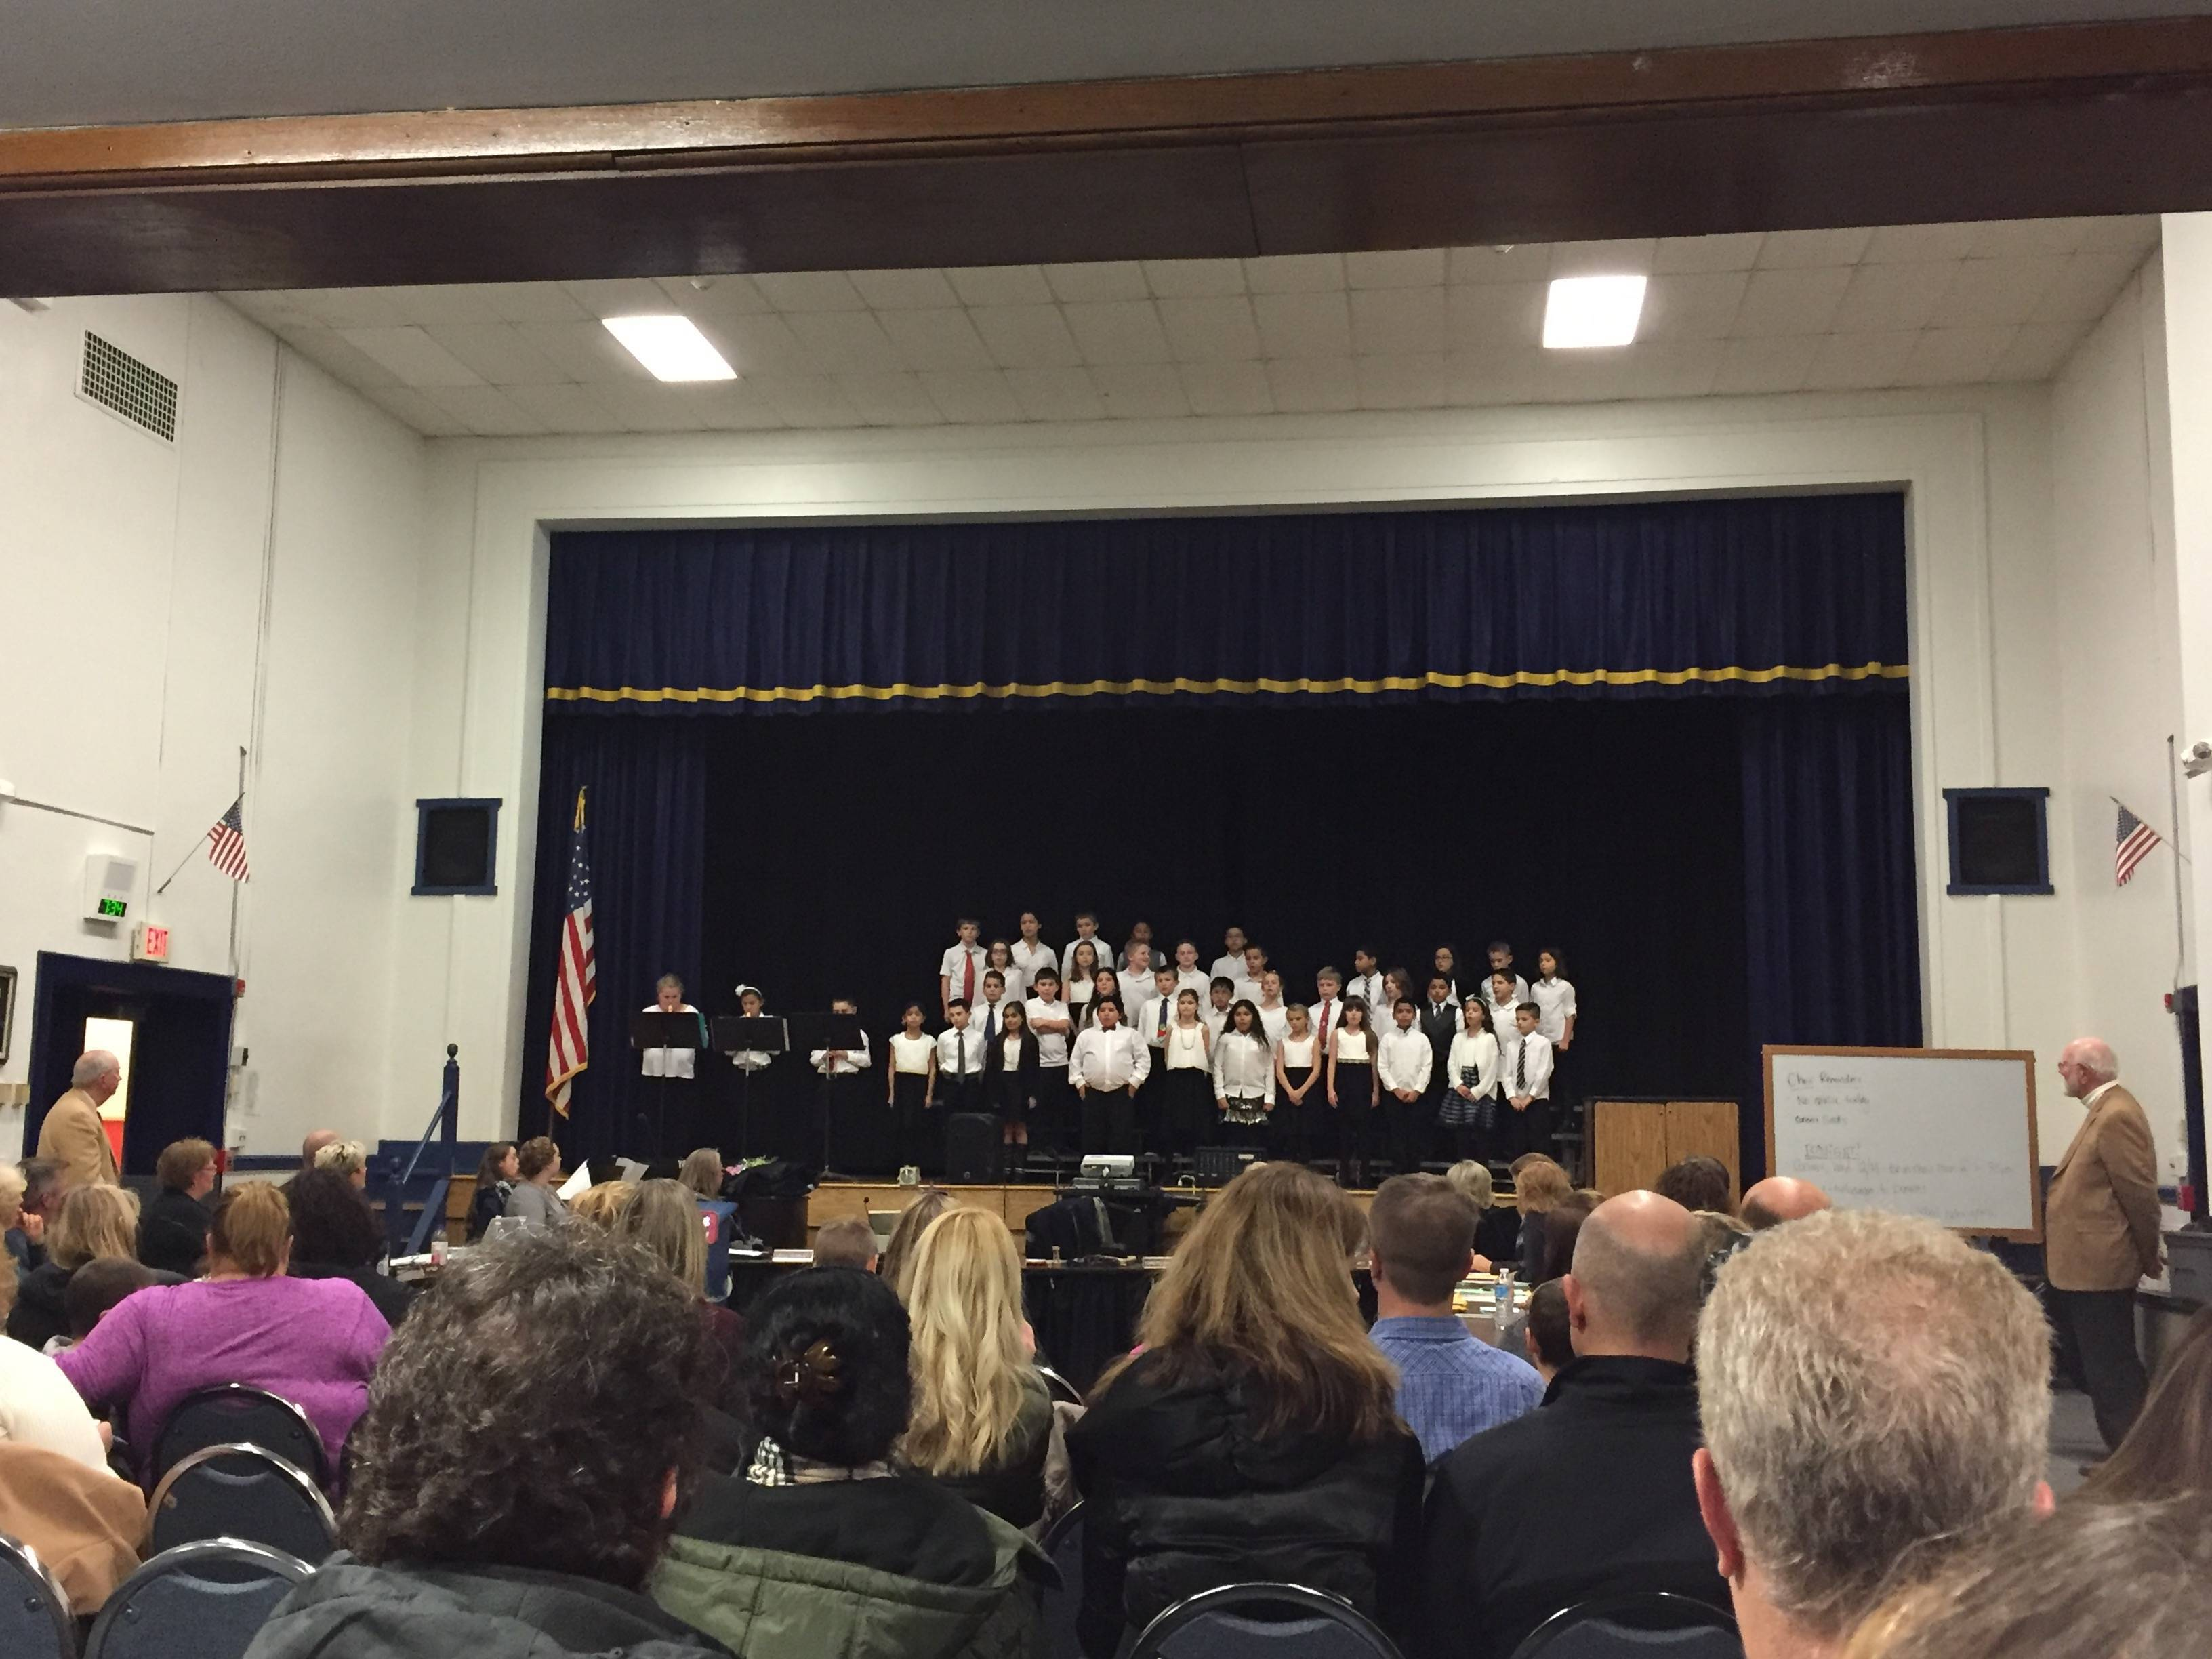 2255dfb7277cc9c17e68_a0635f4ece0c3ccb2f20_Franklin_4th_Grade_Choir_with_Recorders.jpg